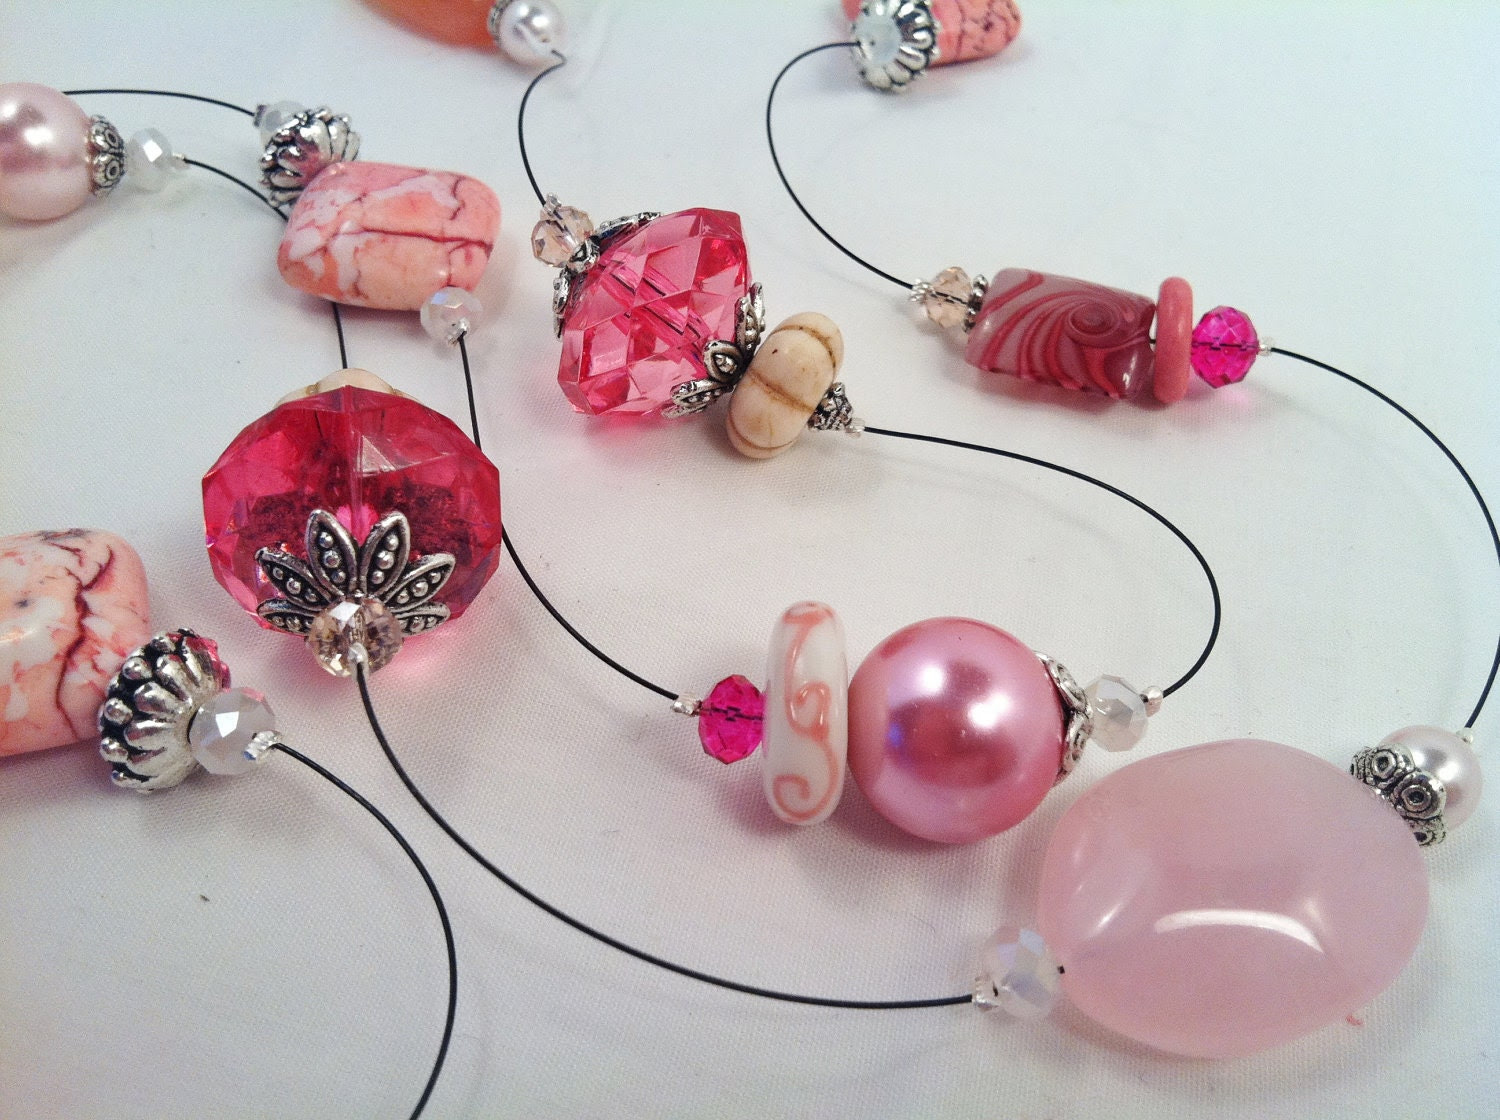 Long Black Wire with Pink Pearls, Glass Beads, Lampwork Beads, Magnesite and Crystals Necklace and Earrings